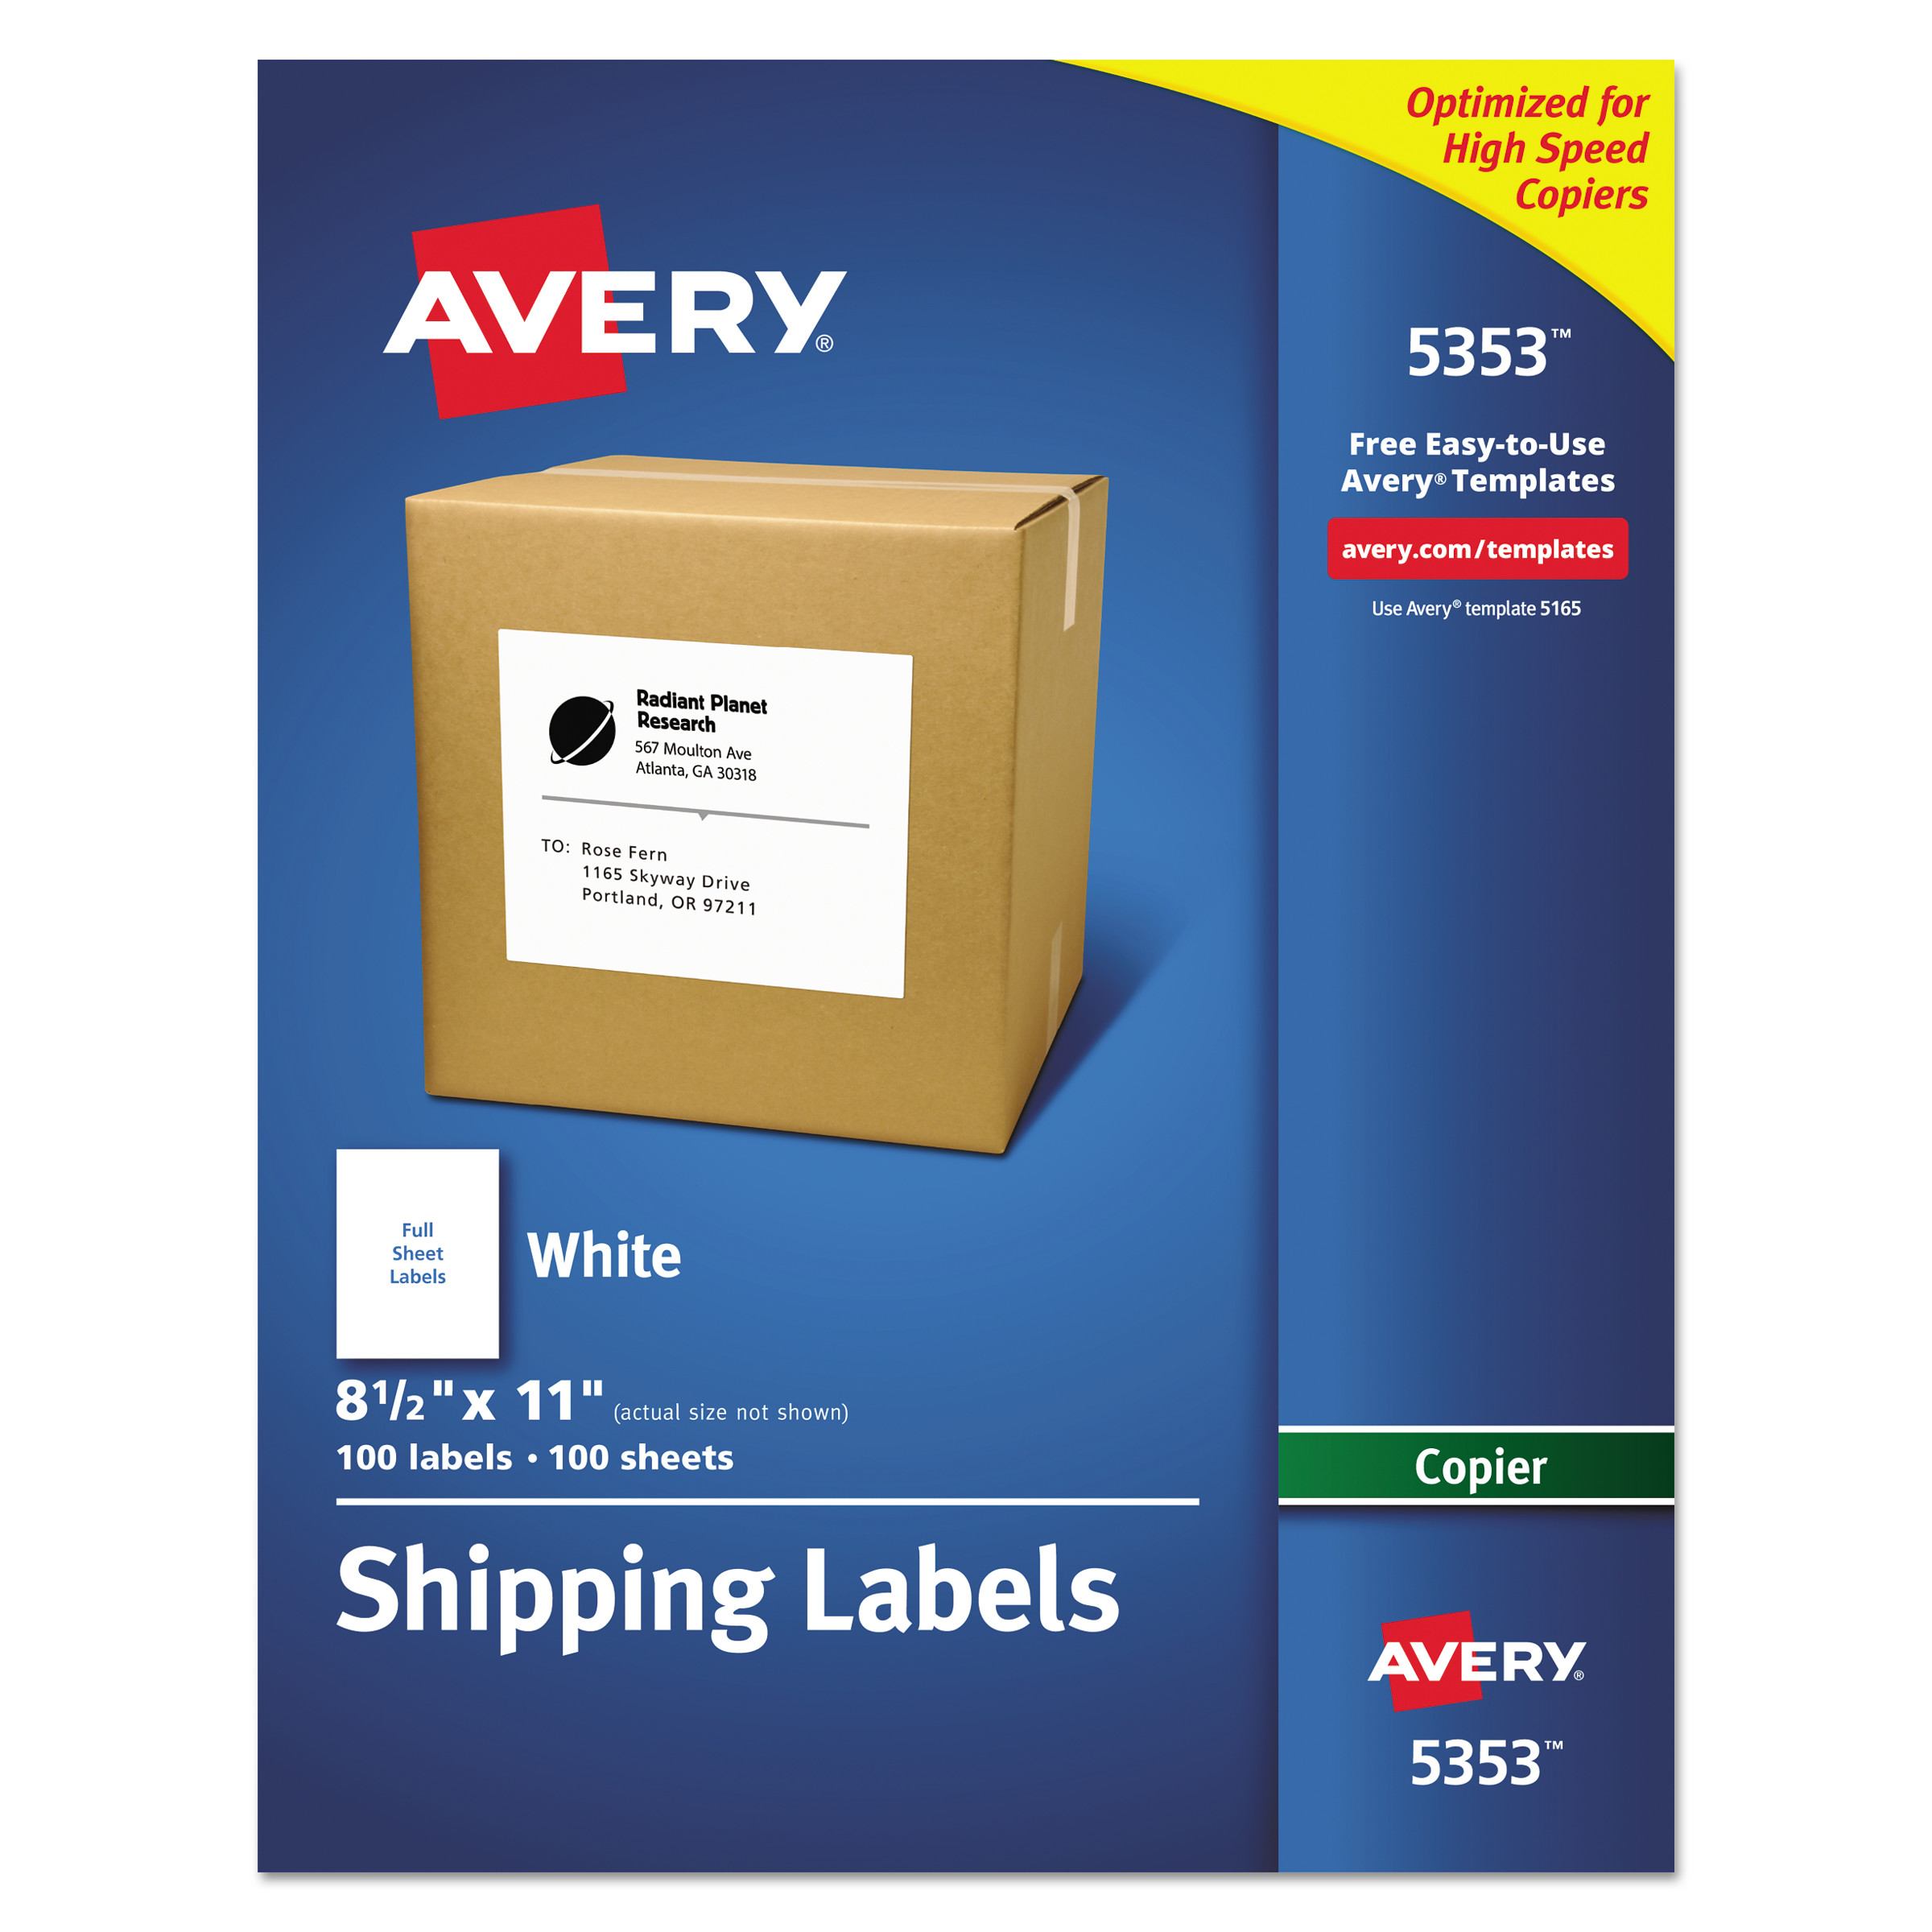 Copier Mailing Labels Copiers 8 5 X